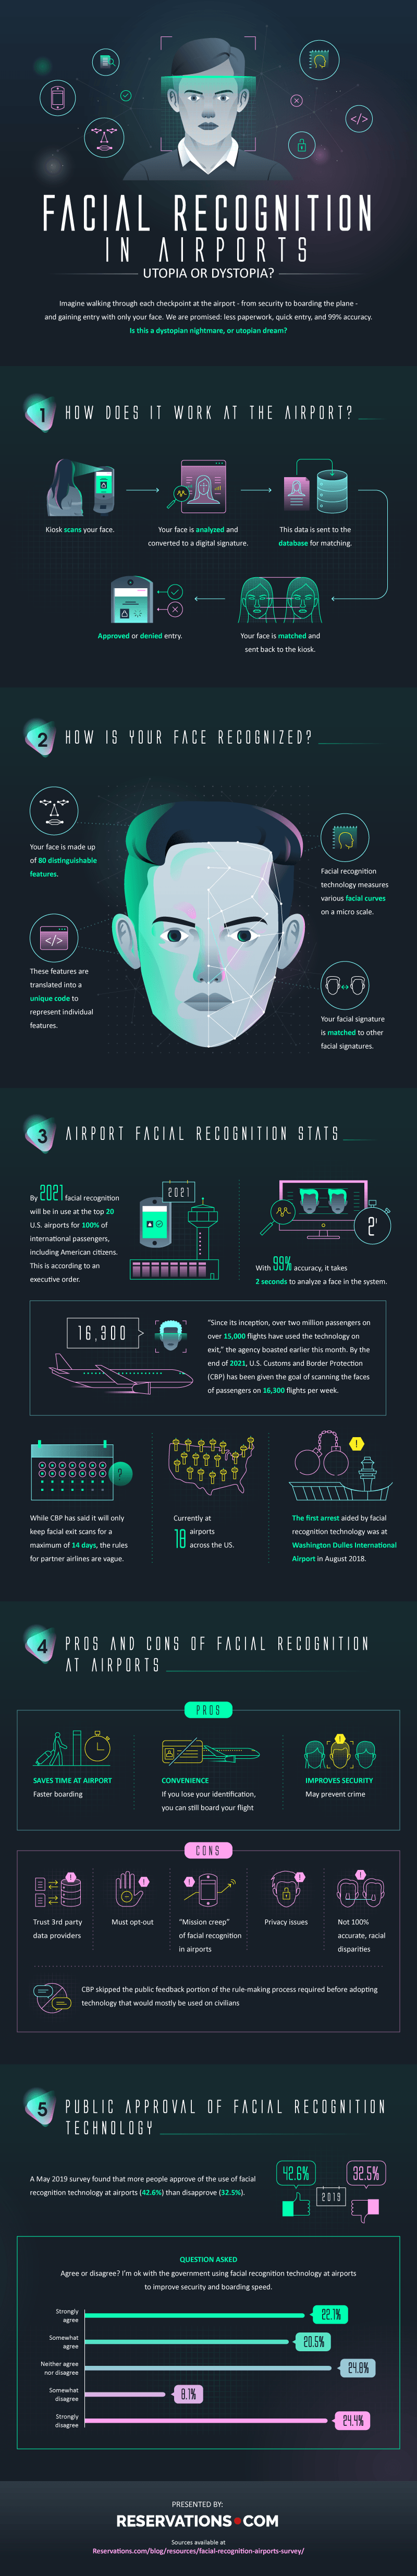 Facial Recognition by Reservations.com